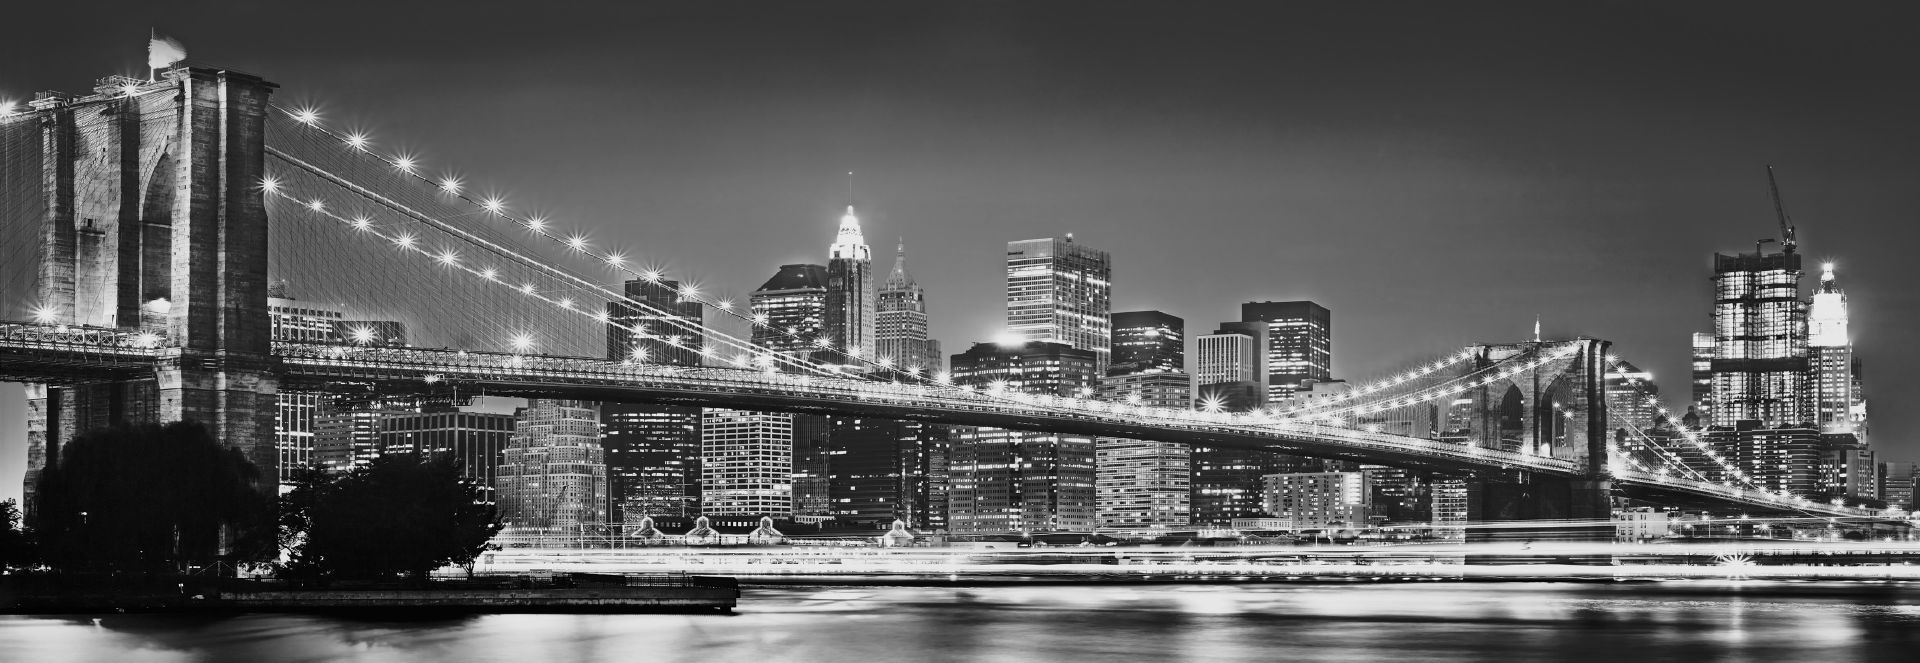 Komar 4nw 320 for Black and white new york mural wallpaper